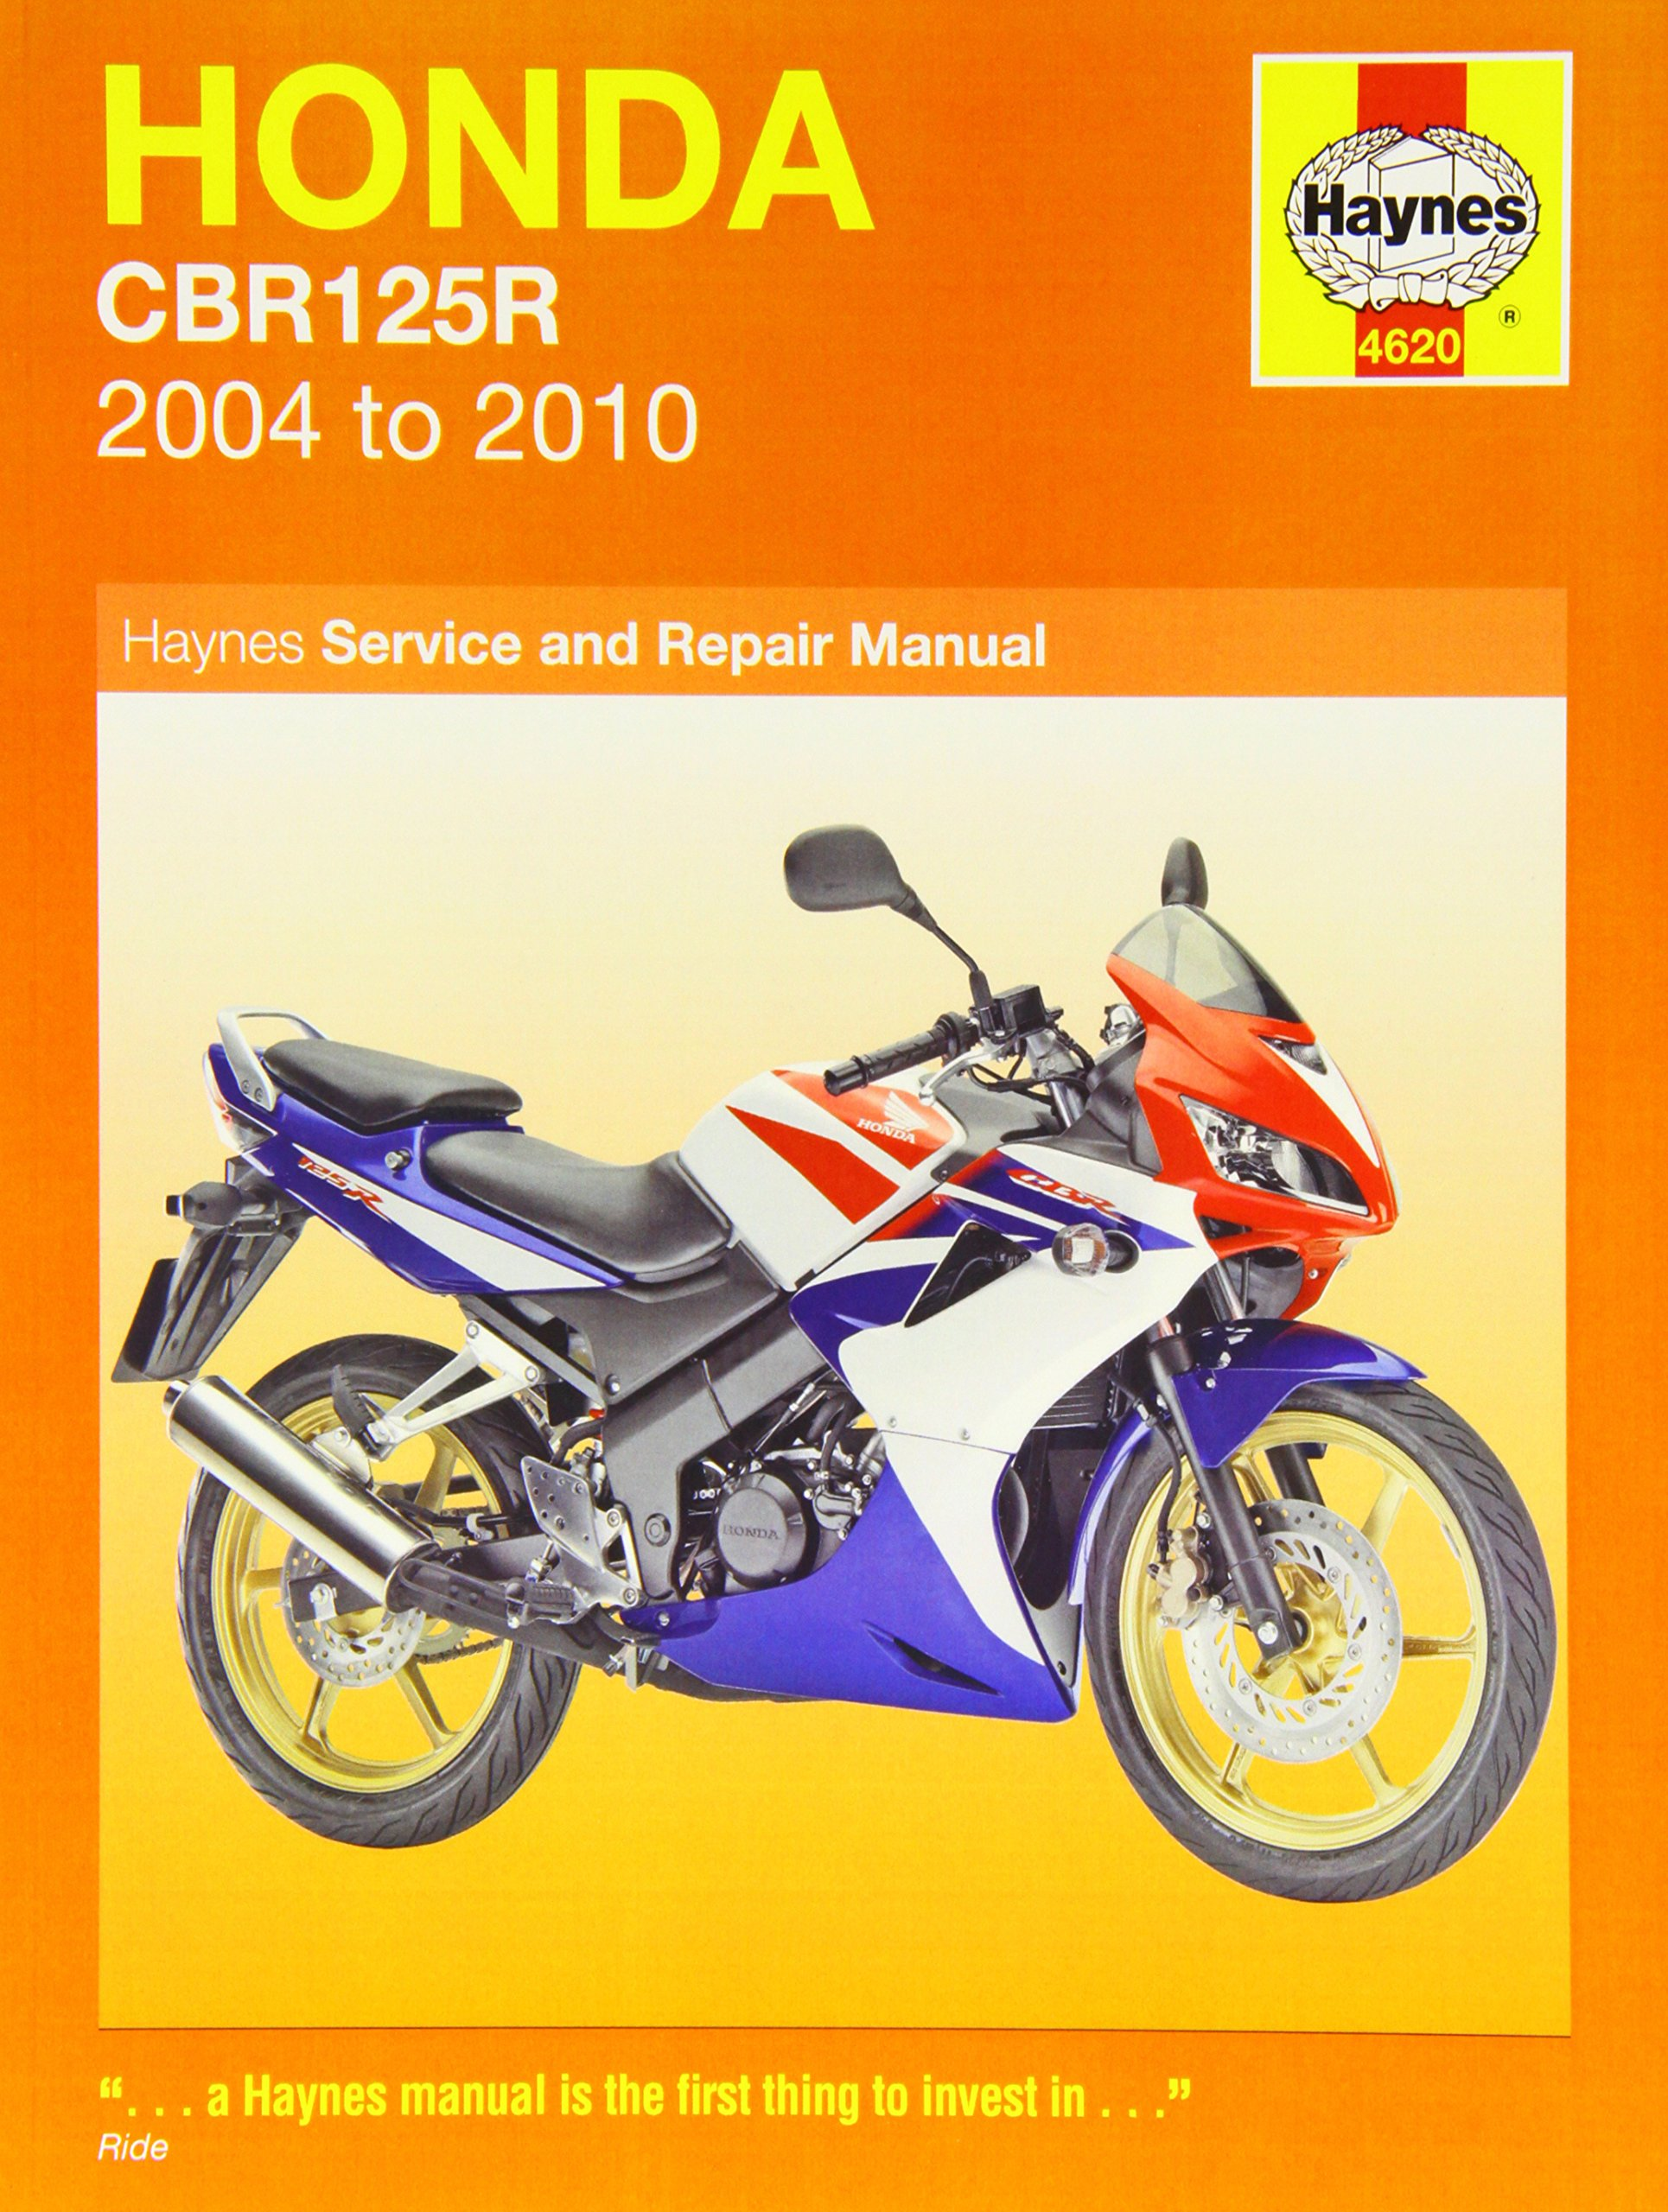 Honda cbr125 service and repair manual 04 10 matthew coombs honda cbr125 service and repair manual 04 10 matthew coombs martynn randall haynes service and repair manuals matthew coombs 9780857335531 fandeluxe Choice Image